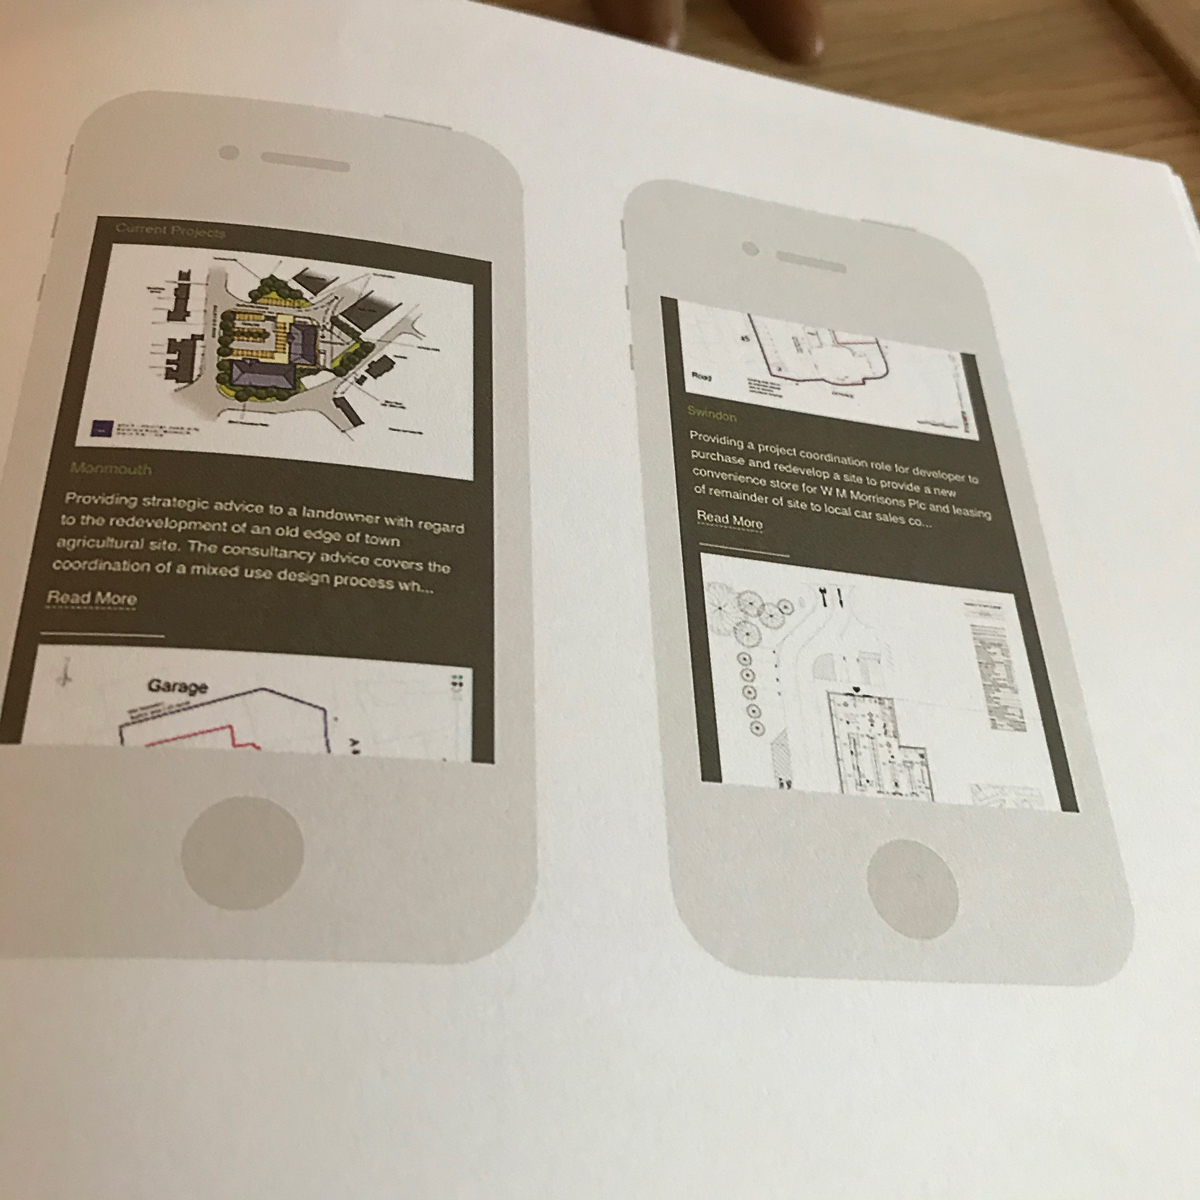 Our web design work featured in a construction design book